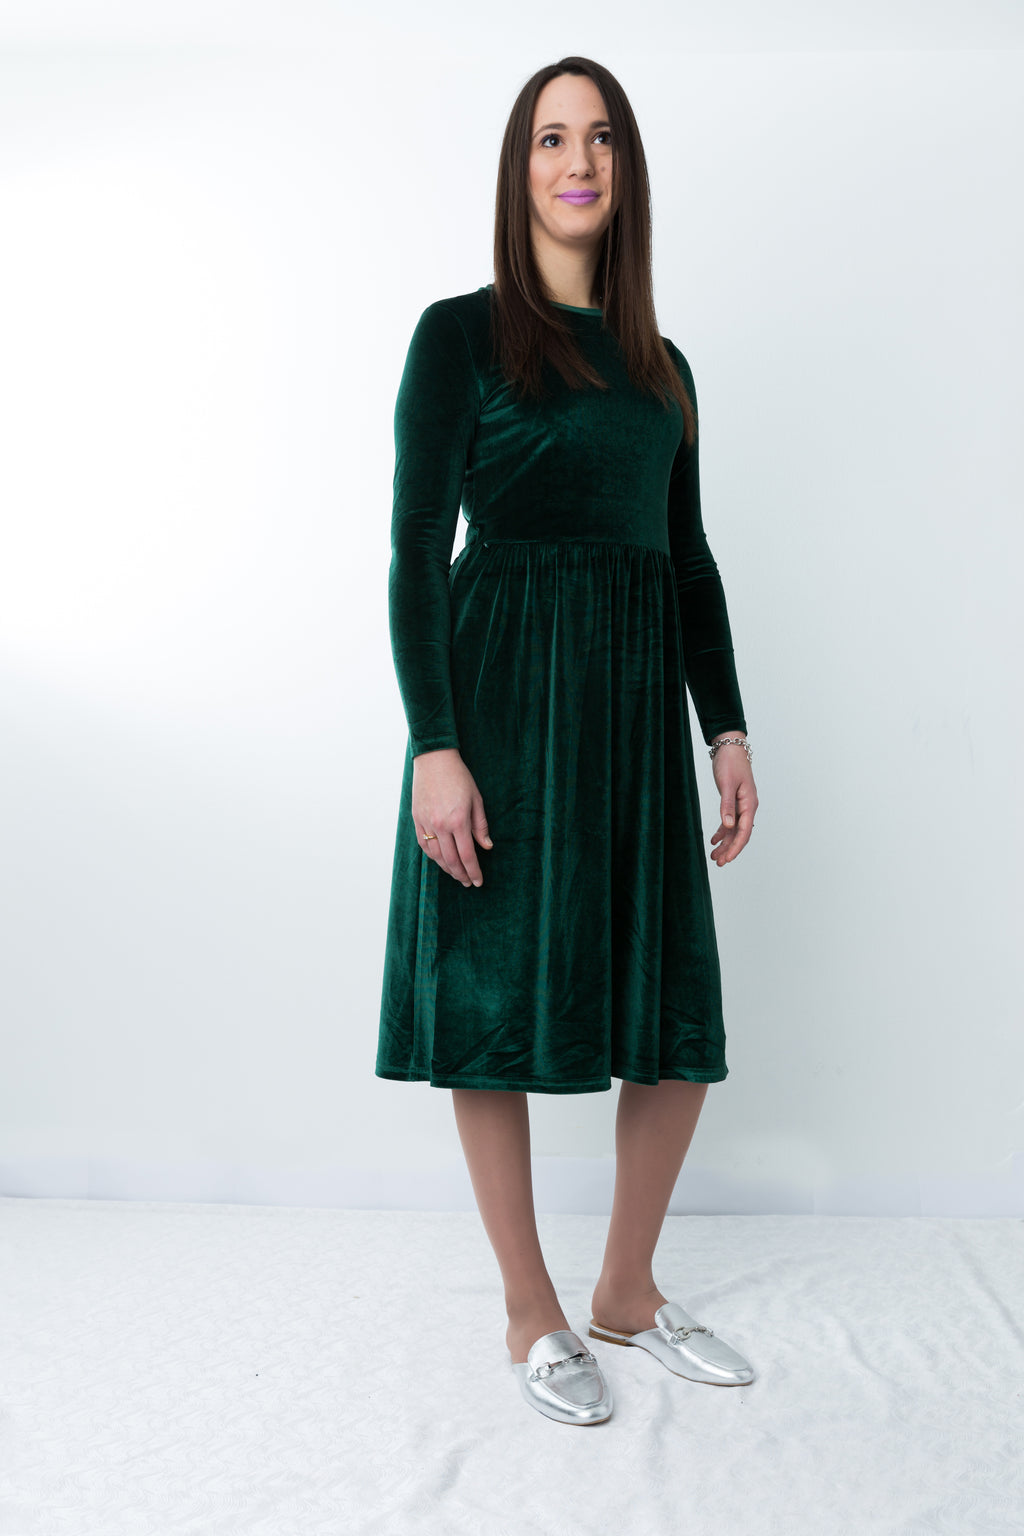 Havah Winter Velvet - Nursing Friendly Dress in Emerald Green